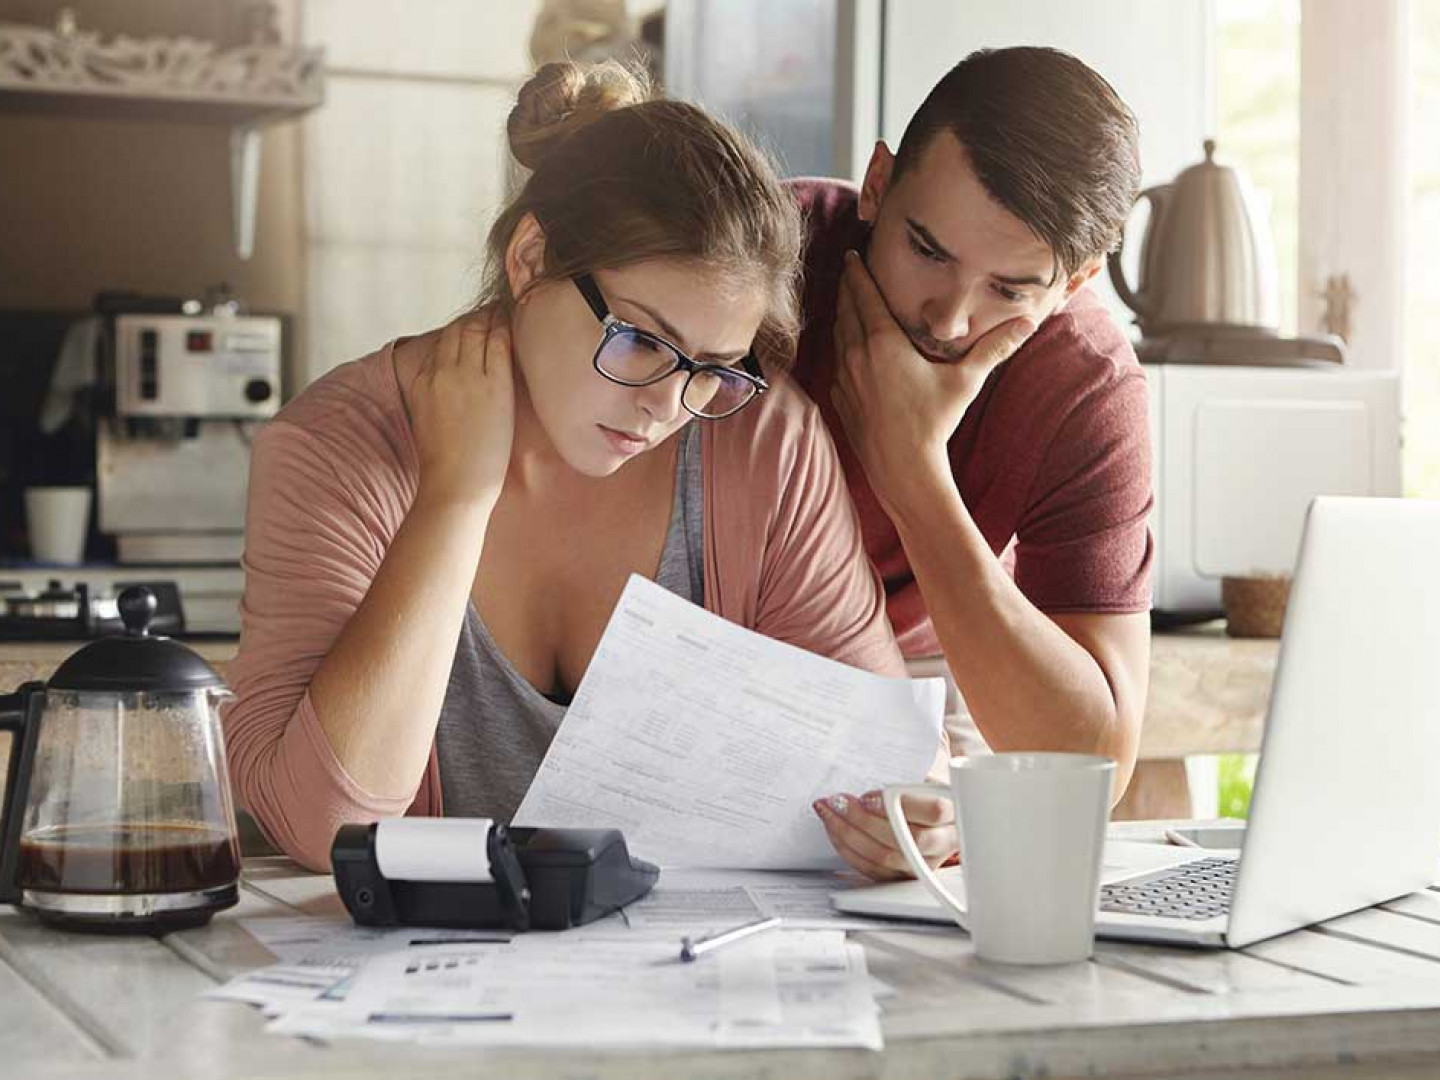 Don't Let Your Debt Ruin Your Future